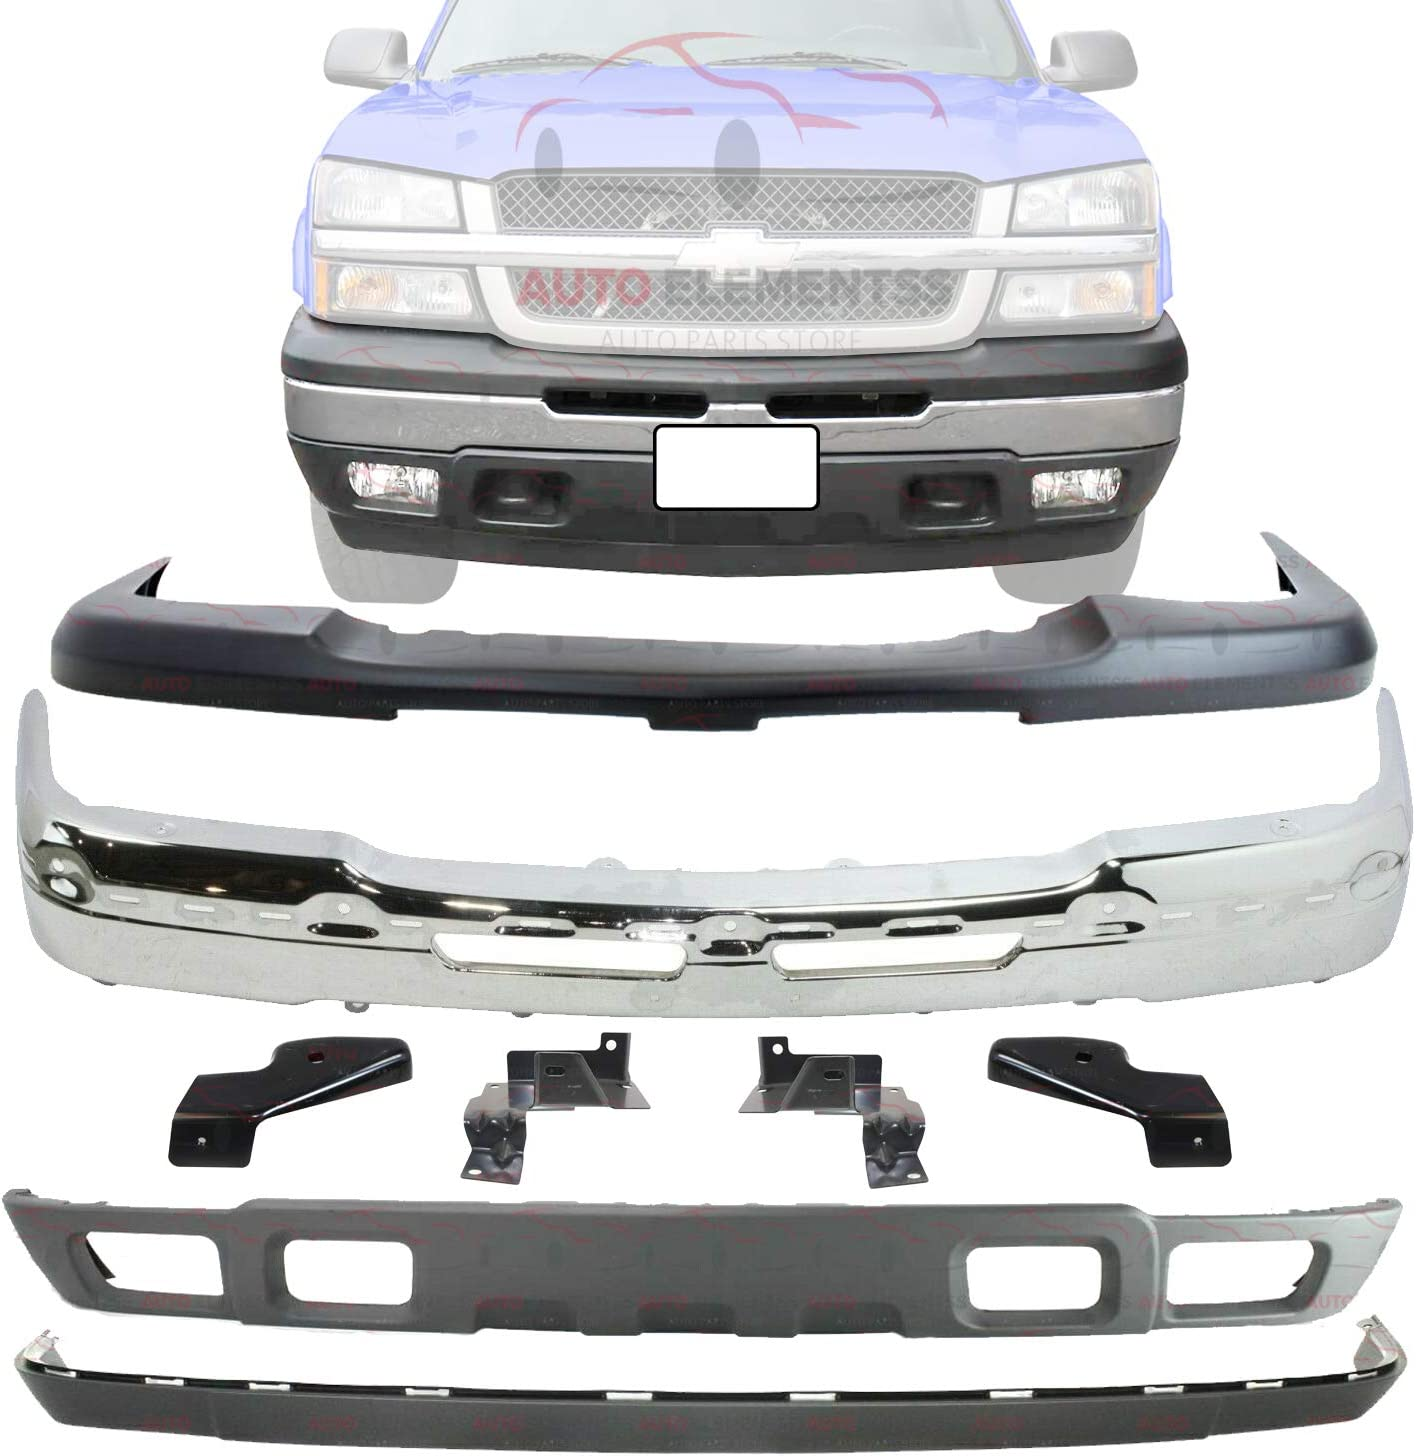 Buy New Front Bumper Chrome Steel Upper Cover Lower Valance Extension Textured Brackets For 2003 2007 Chevy Silverado 1500 2002 06 Avalanche Direct Replacement 19150310 10397999 15139805 C013703 Online In Indonesia B08dg5djzj